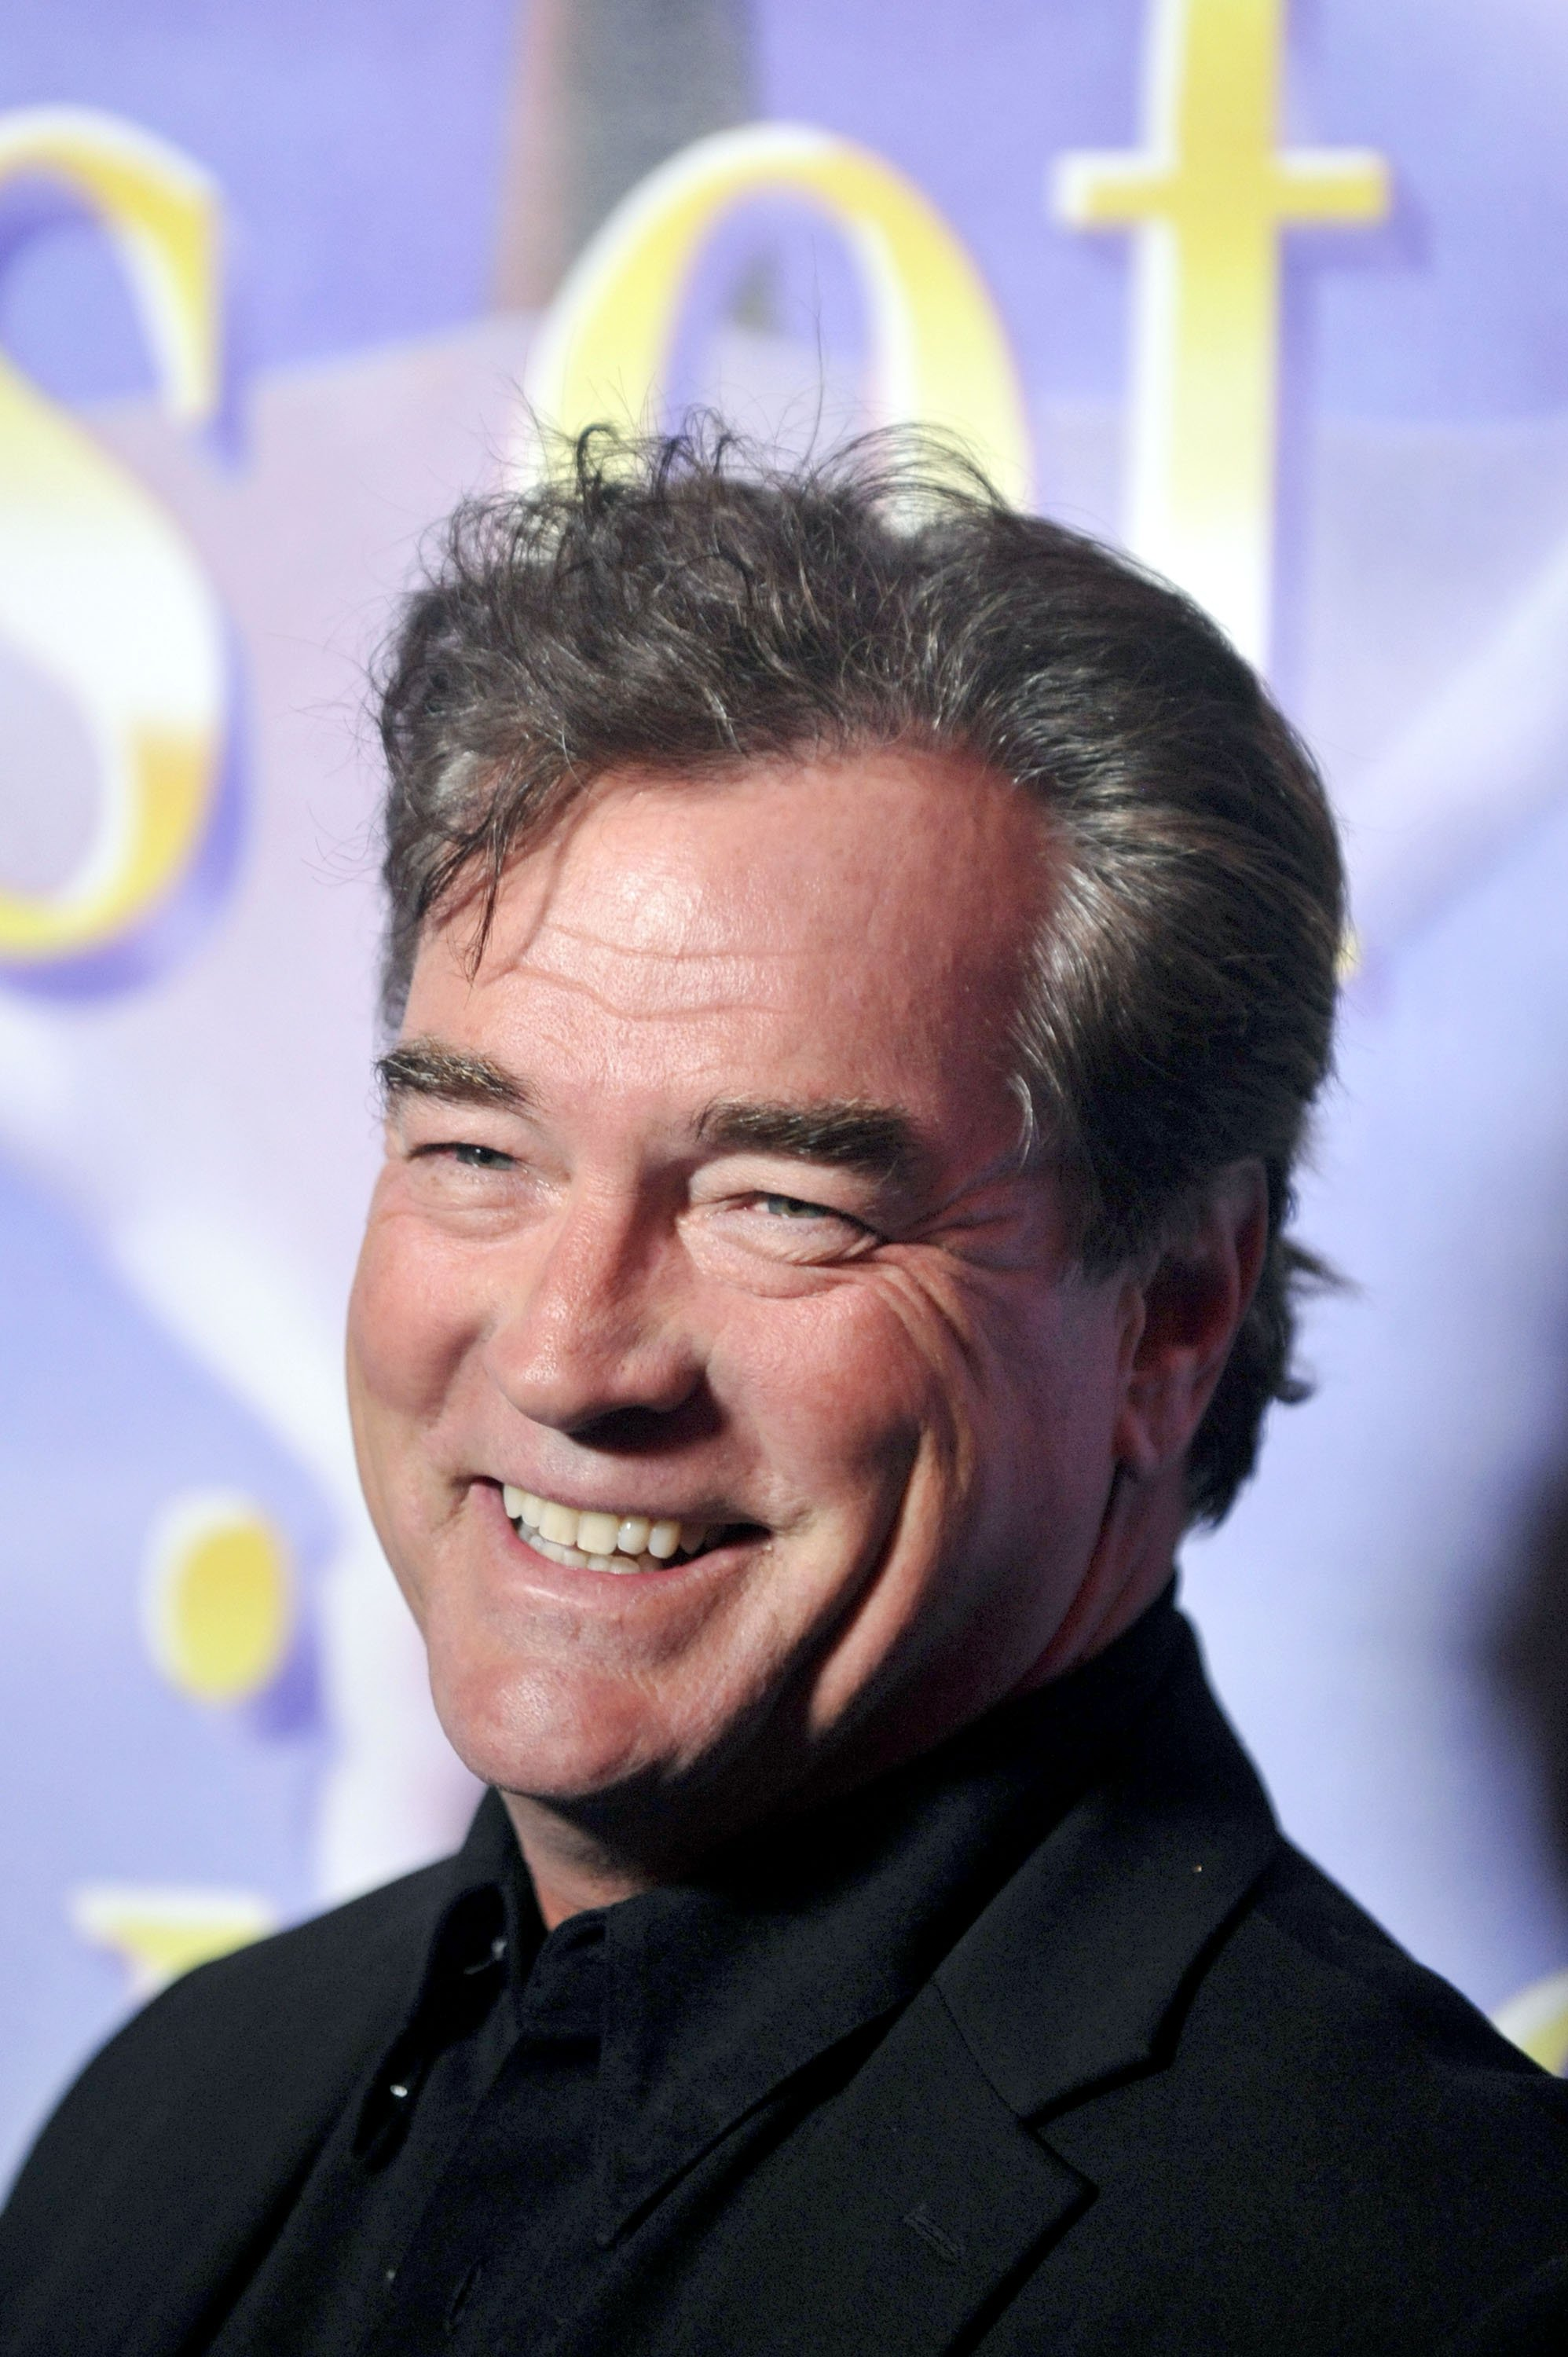 """John Callahan at the """"Days Of Our Lives"""" 45th Anniversary Party in 2010 